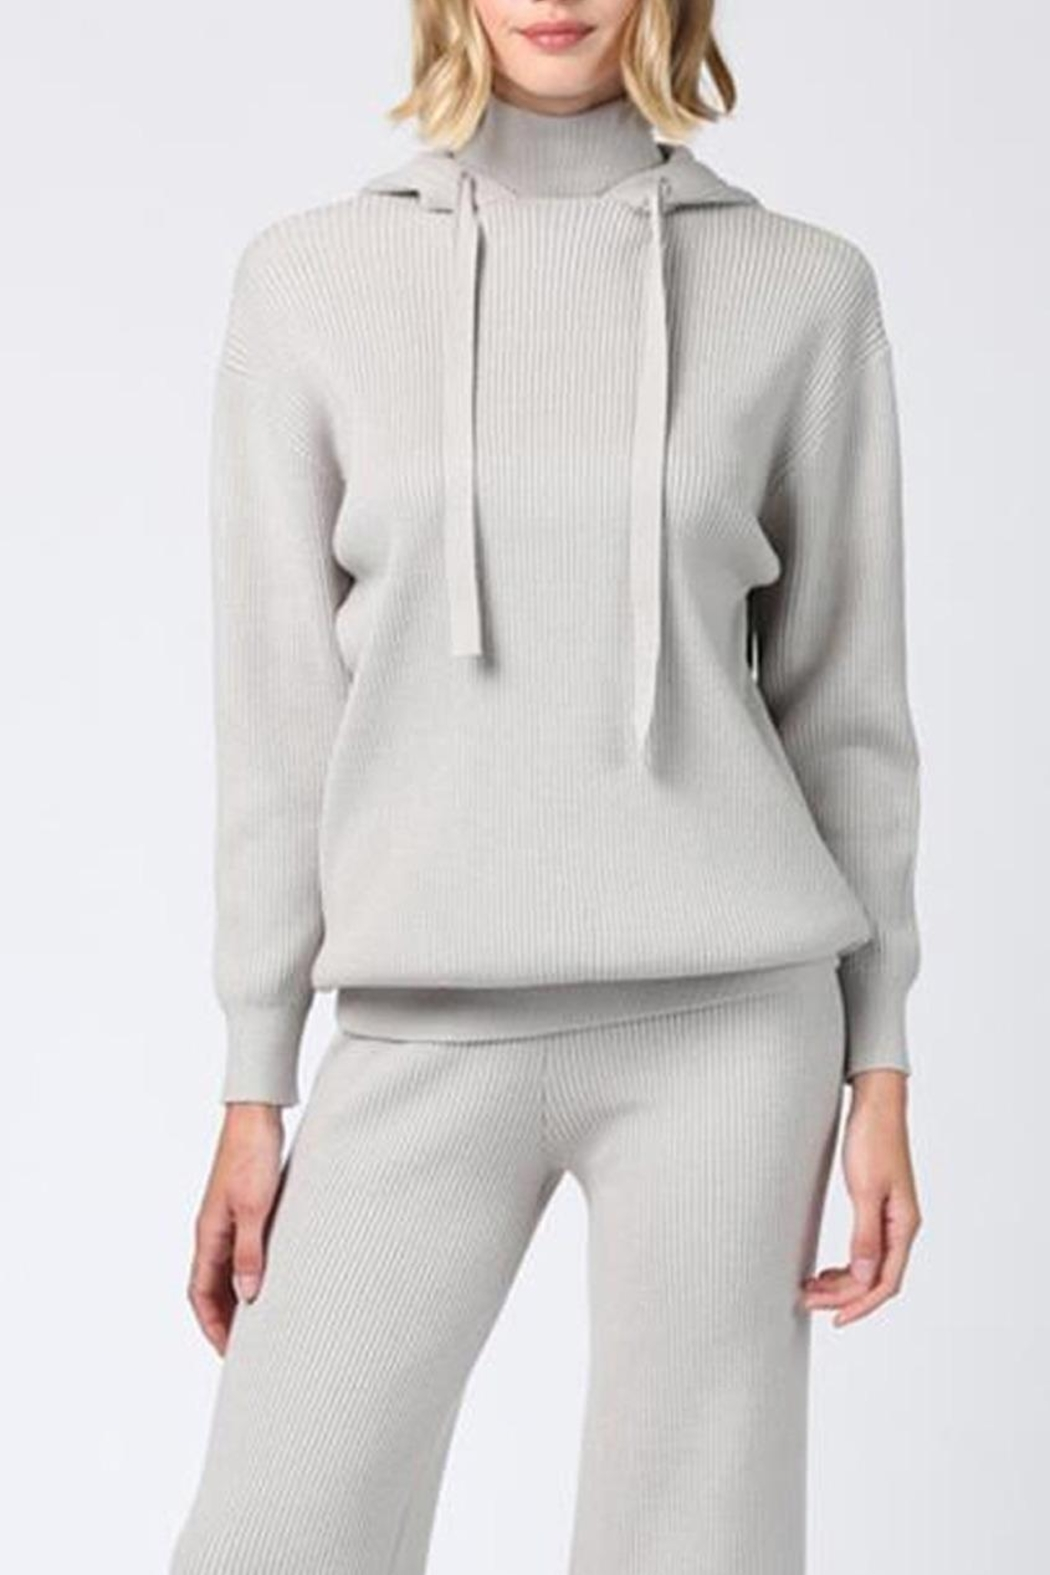 FATE by LFD Knit Drawstring Hoodie - Main Image